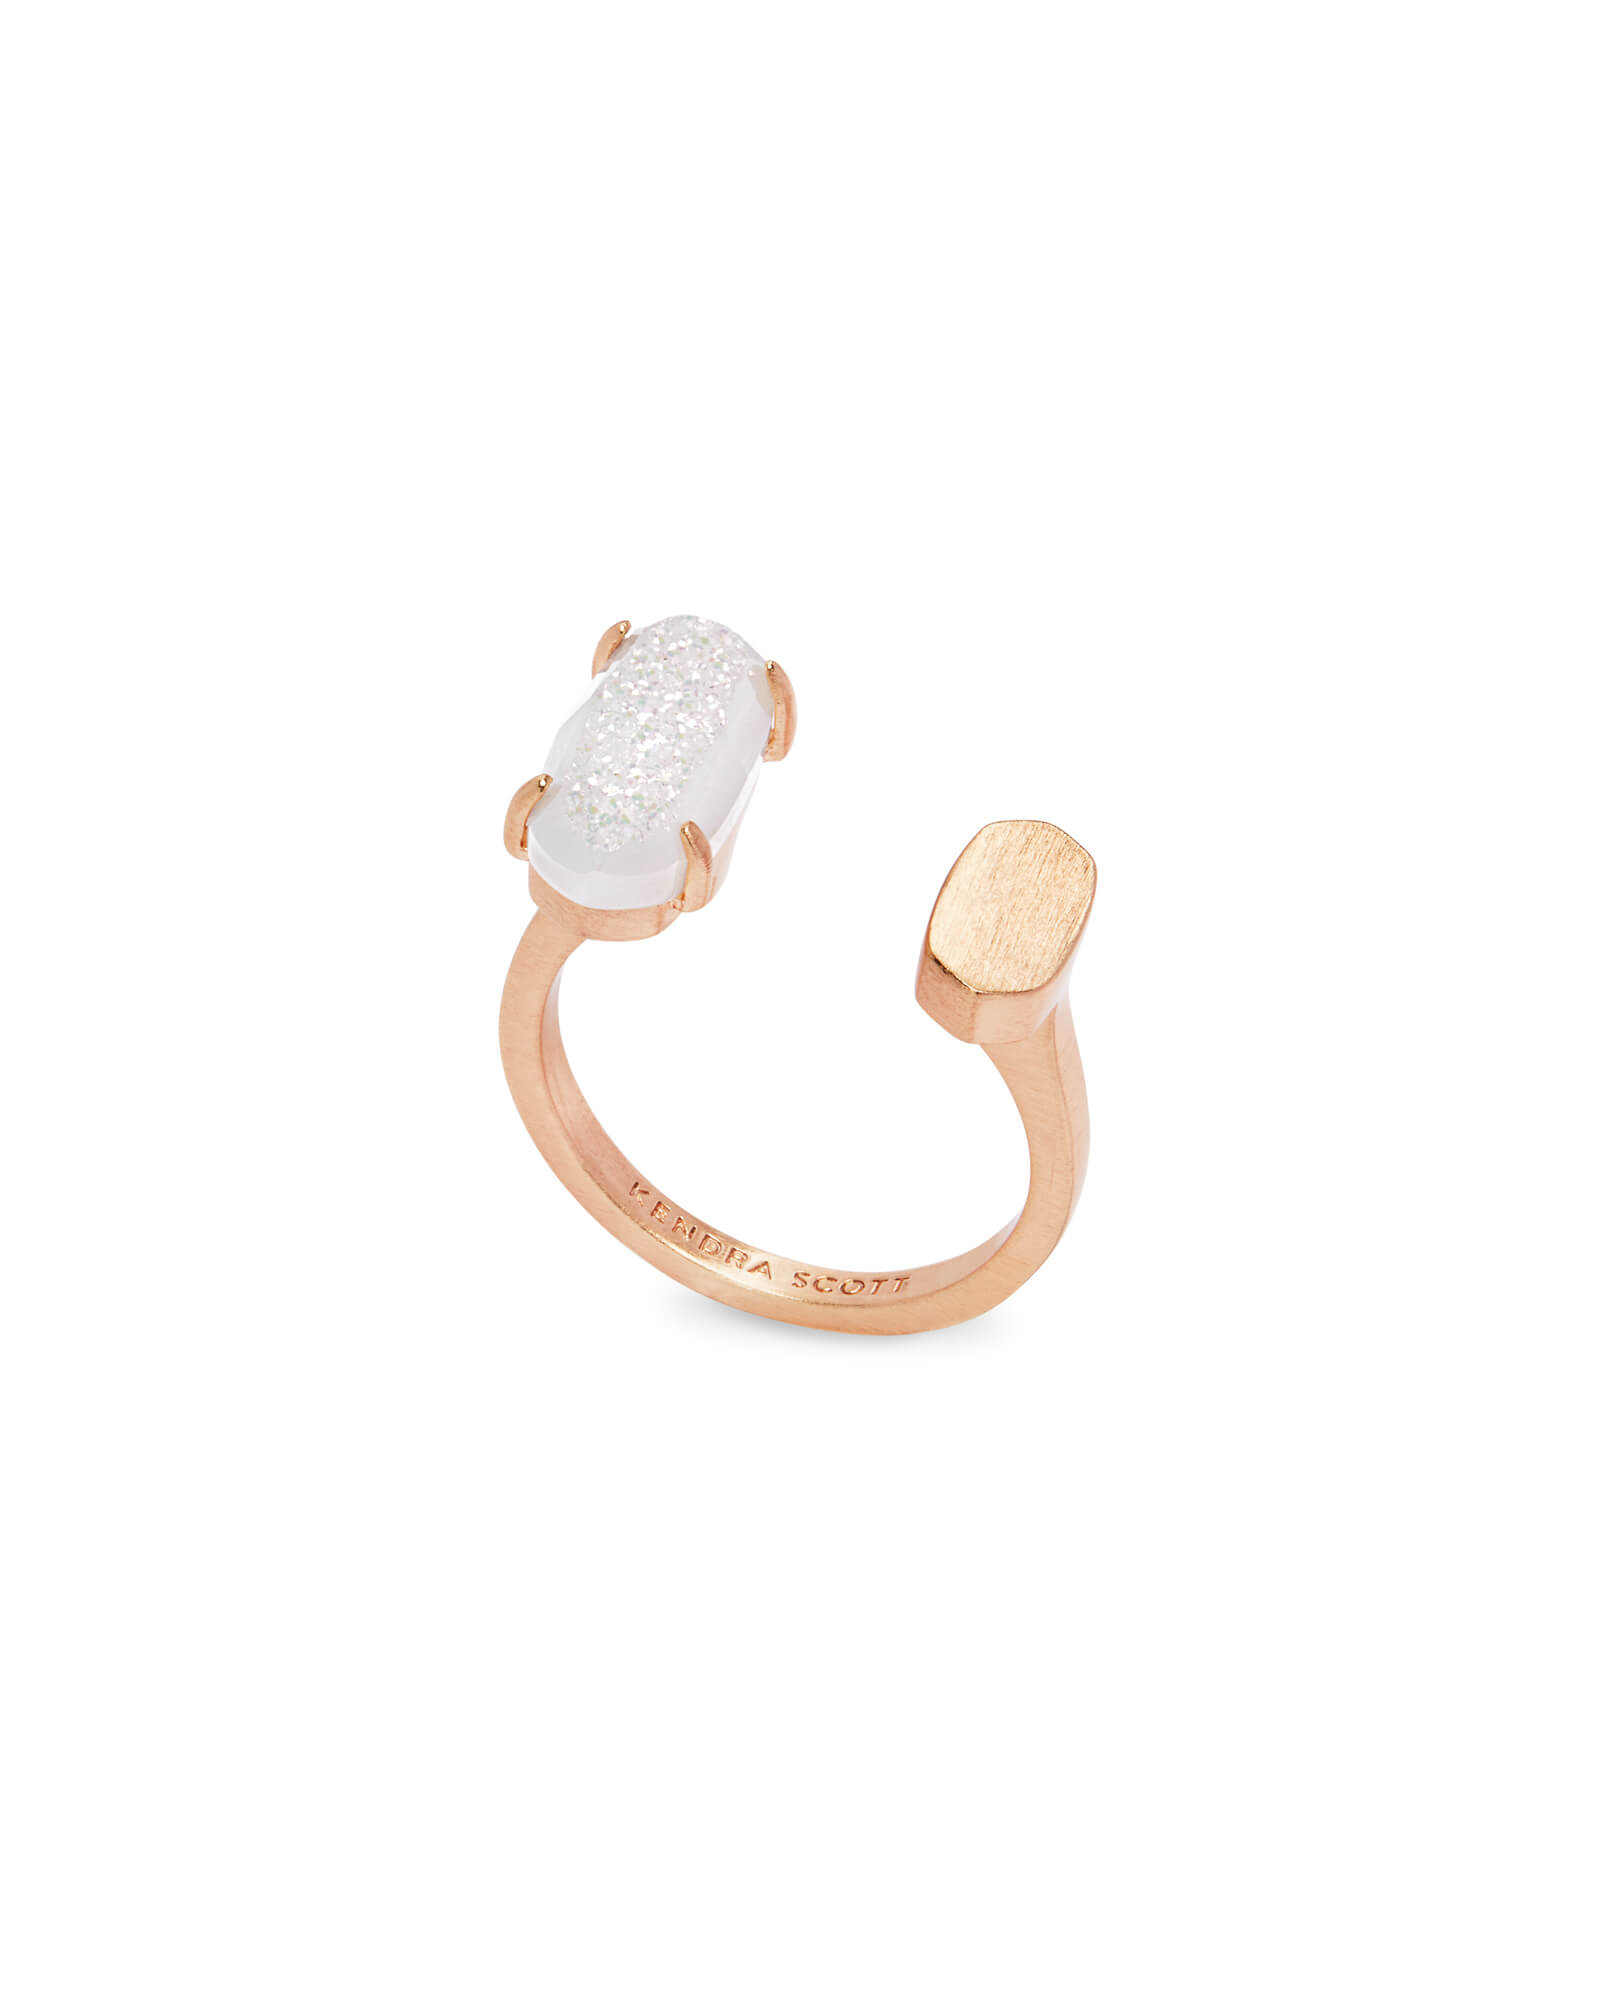 Pryde Rose Gold Open Ring